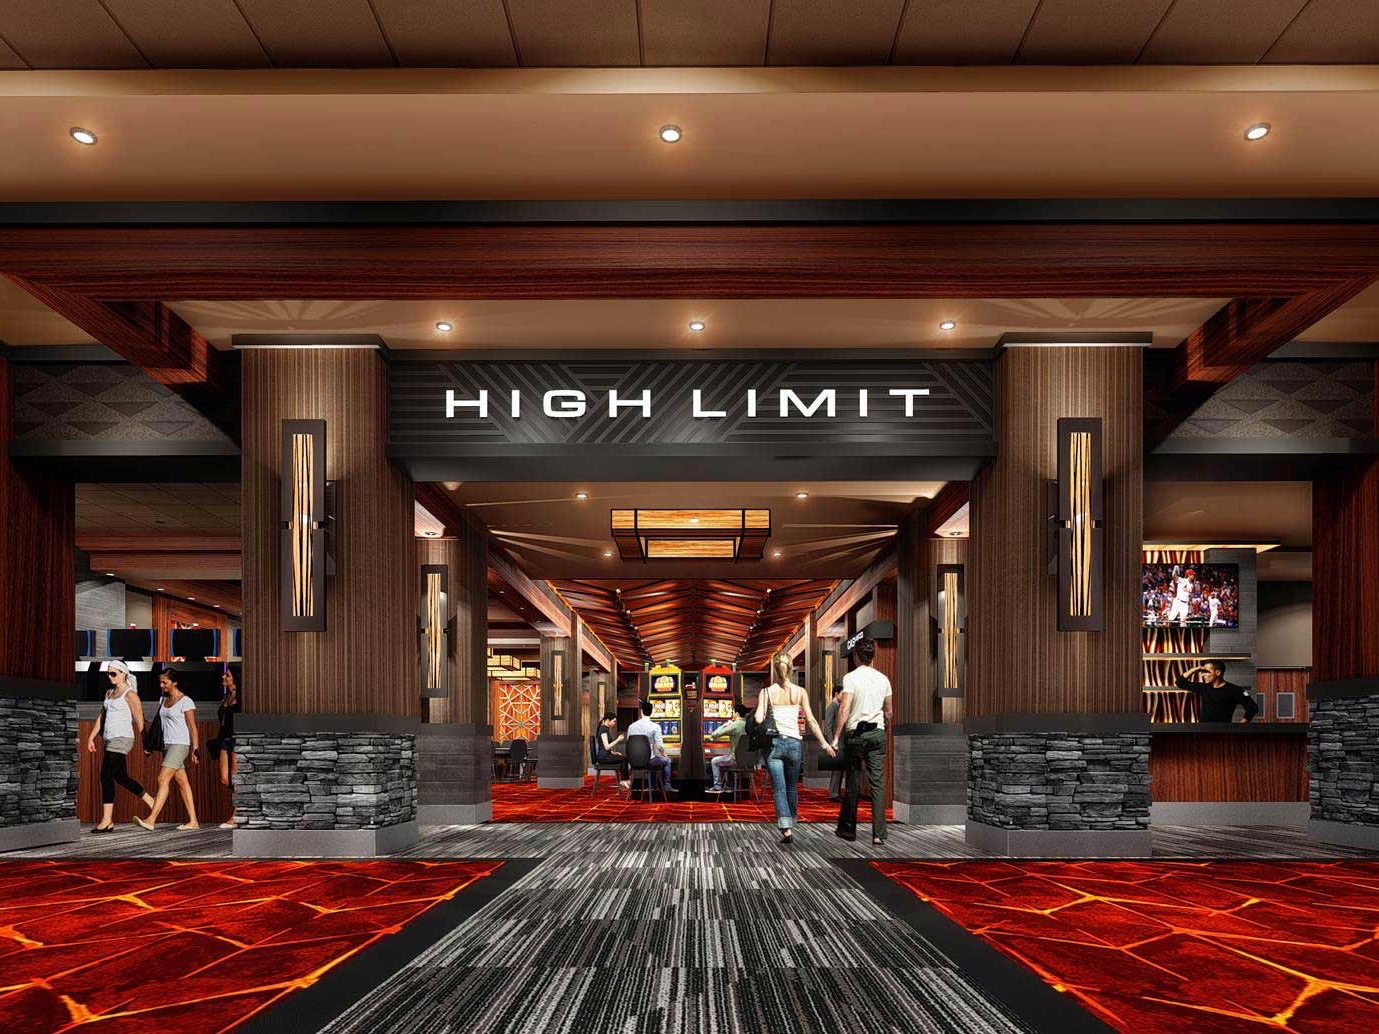 Saginaw Chippewa Tribe debuts first phase of major casino renovation